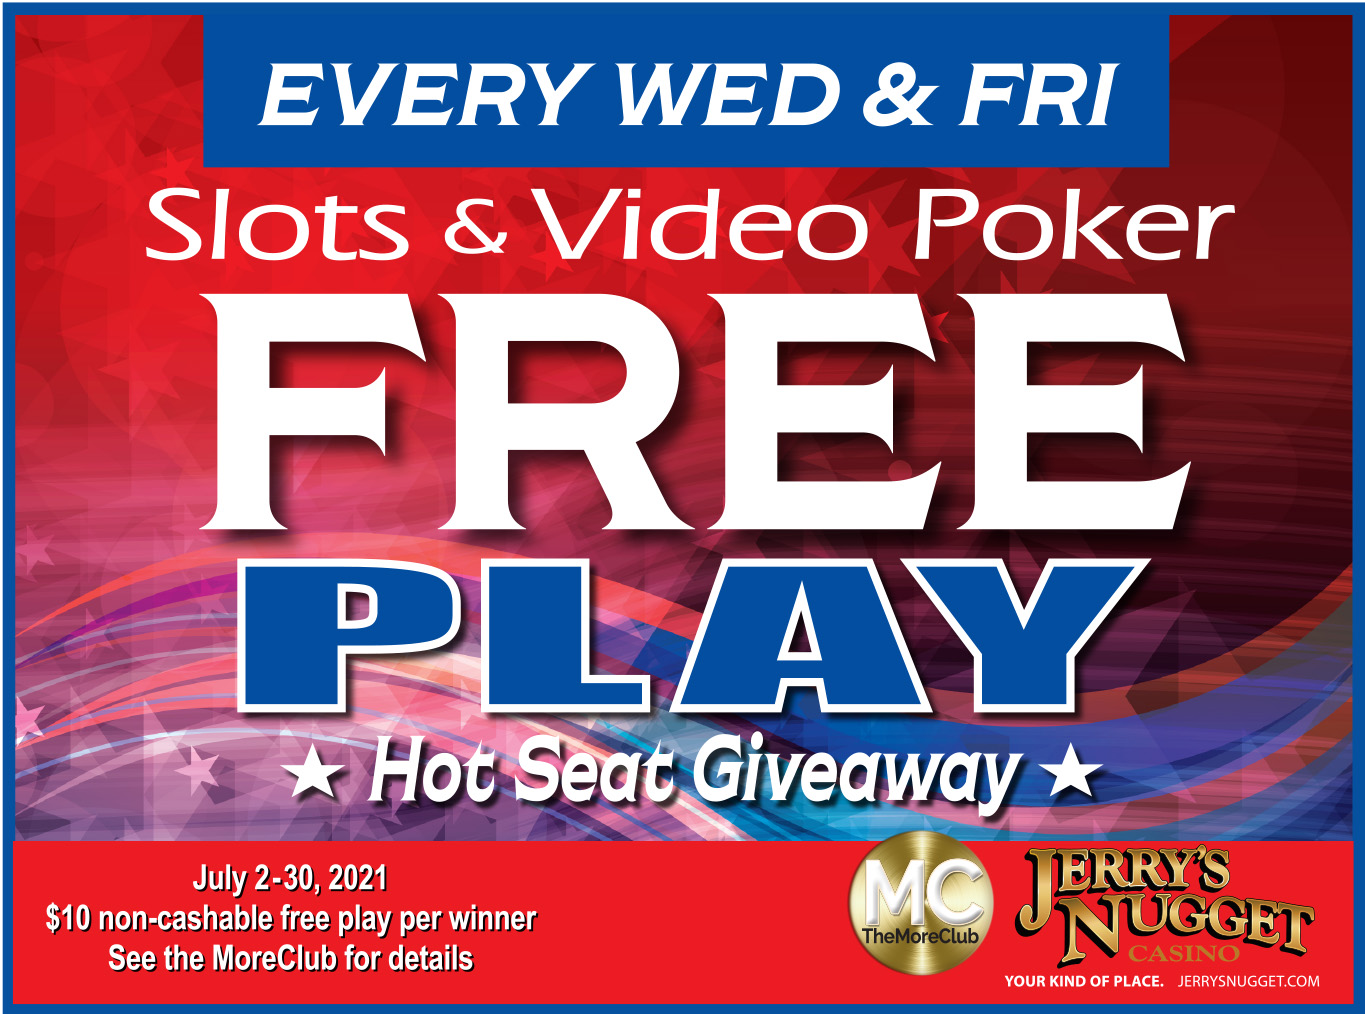 Hot Seat Free Play Giveaway